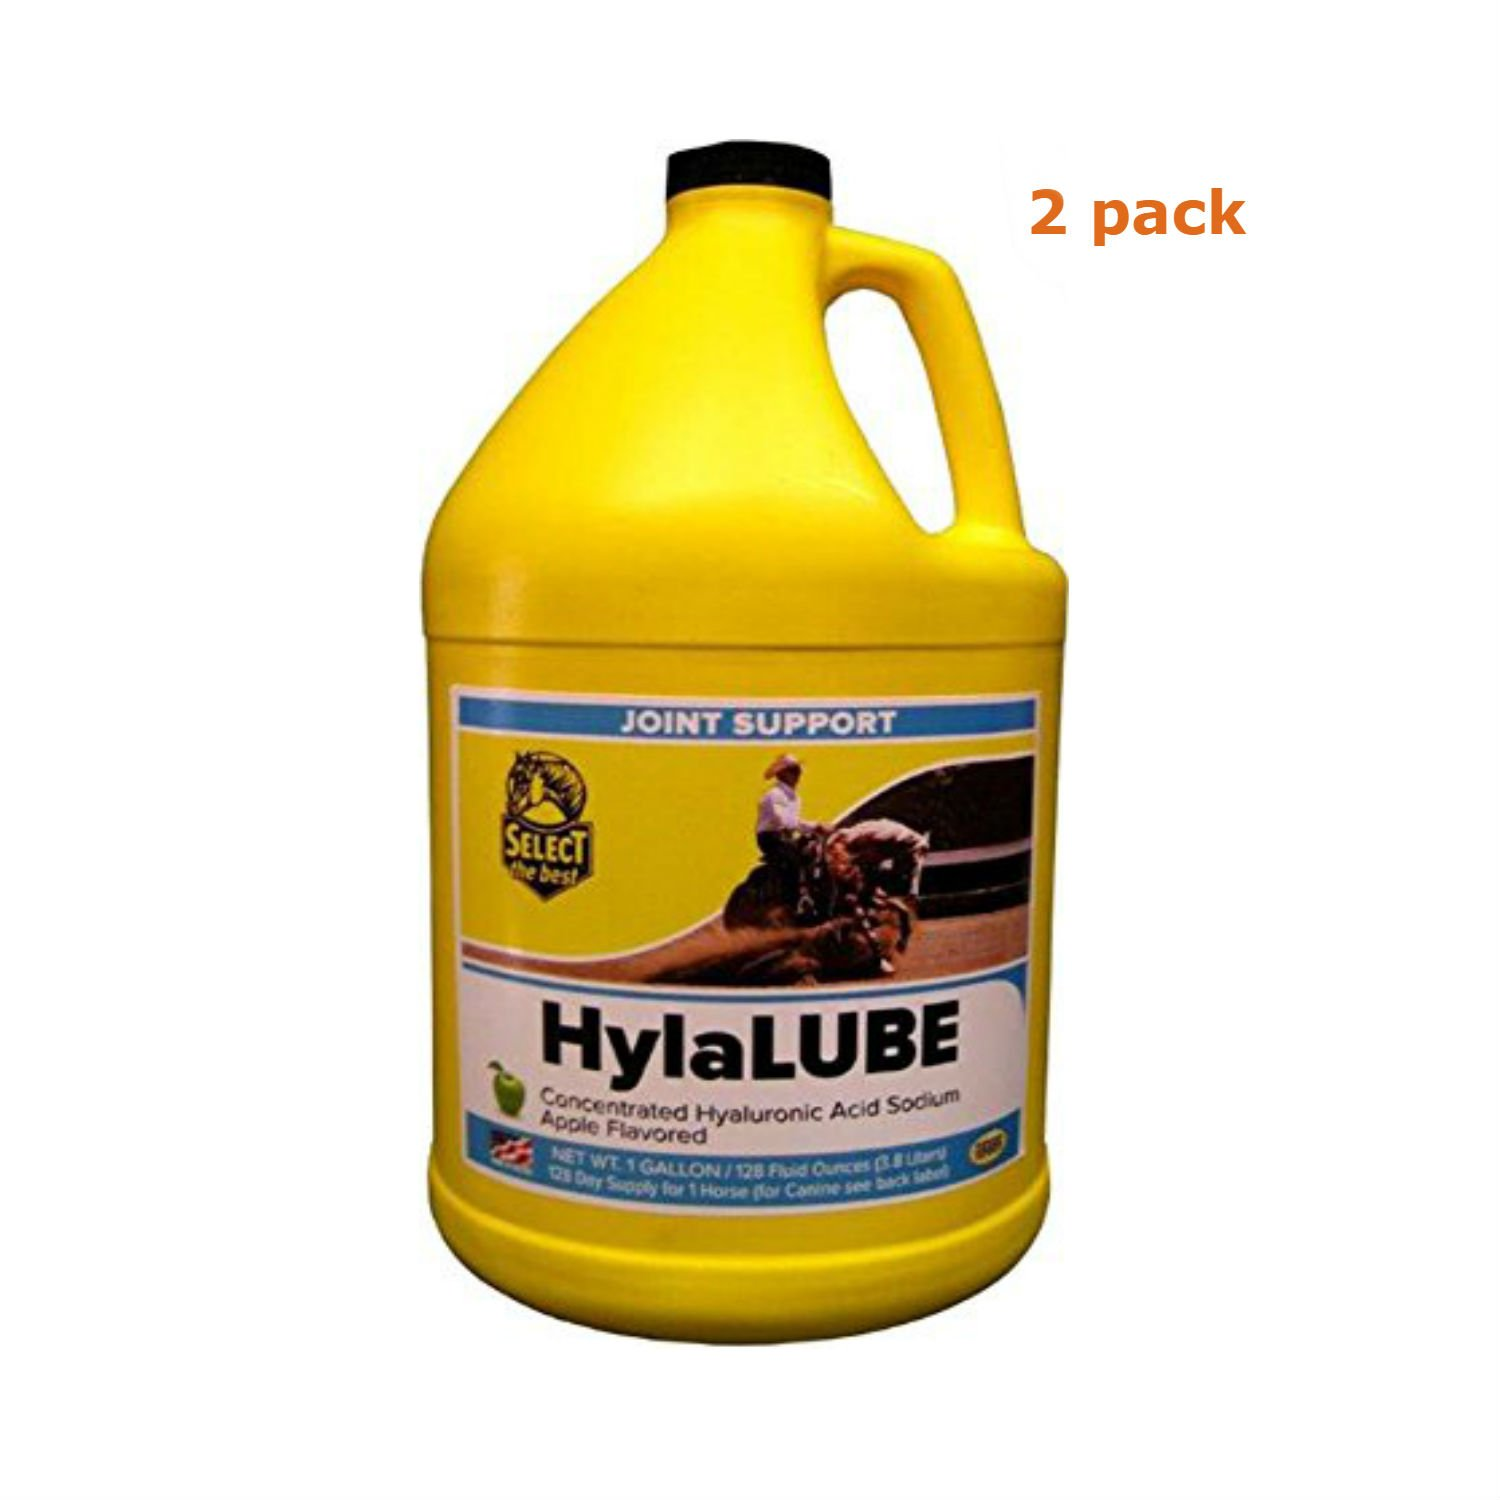 RICHDEL Select The Best HylaLUBE - Pack of 2